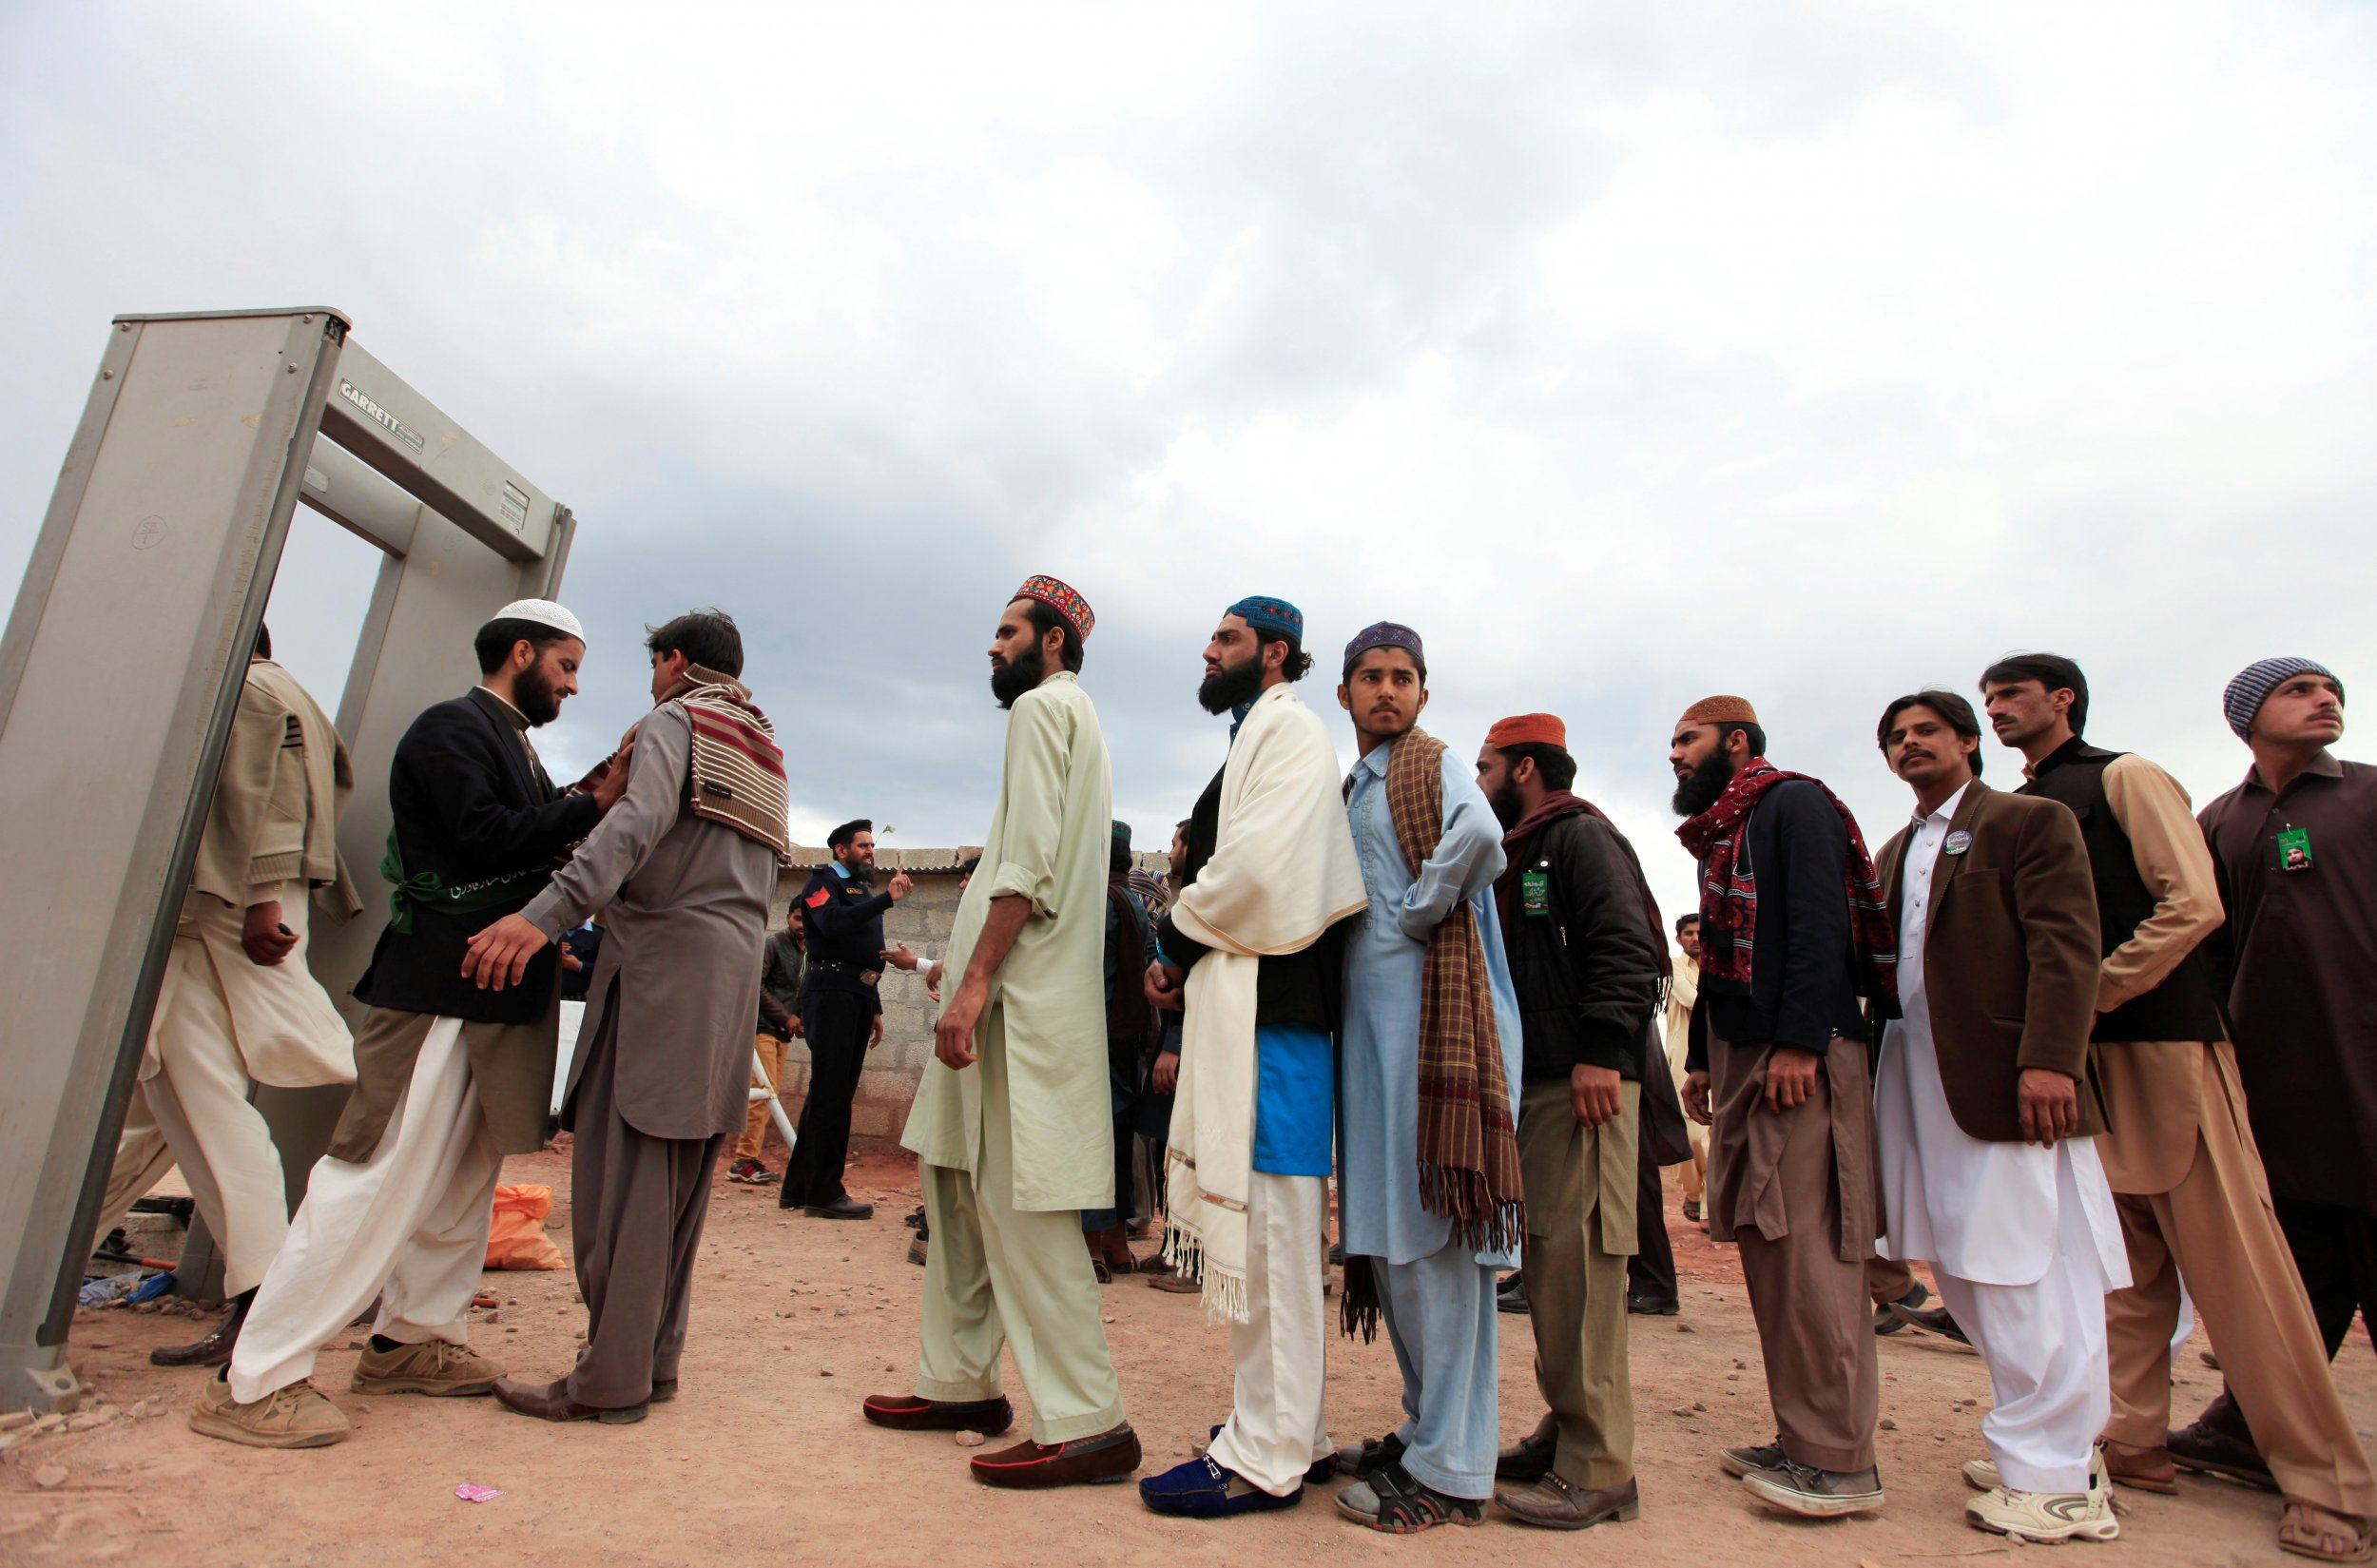 Men queue to access Qadri shrine